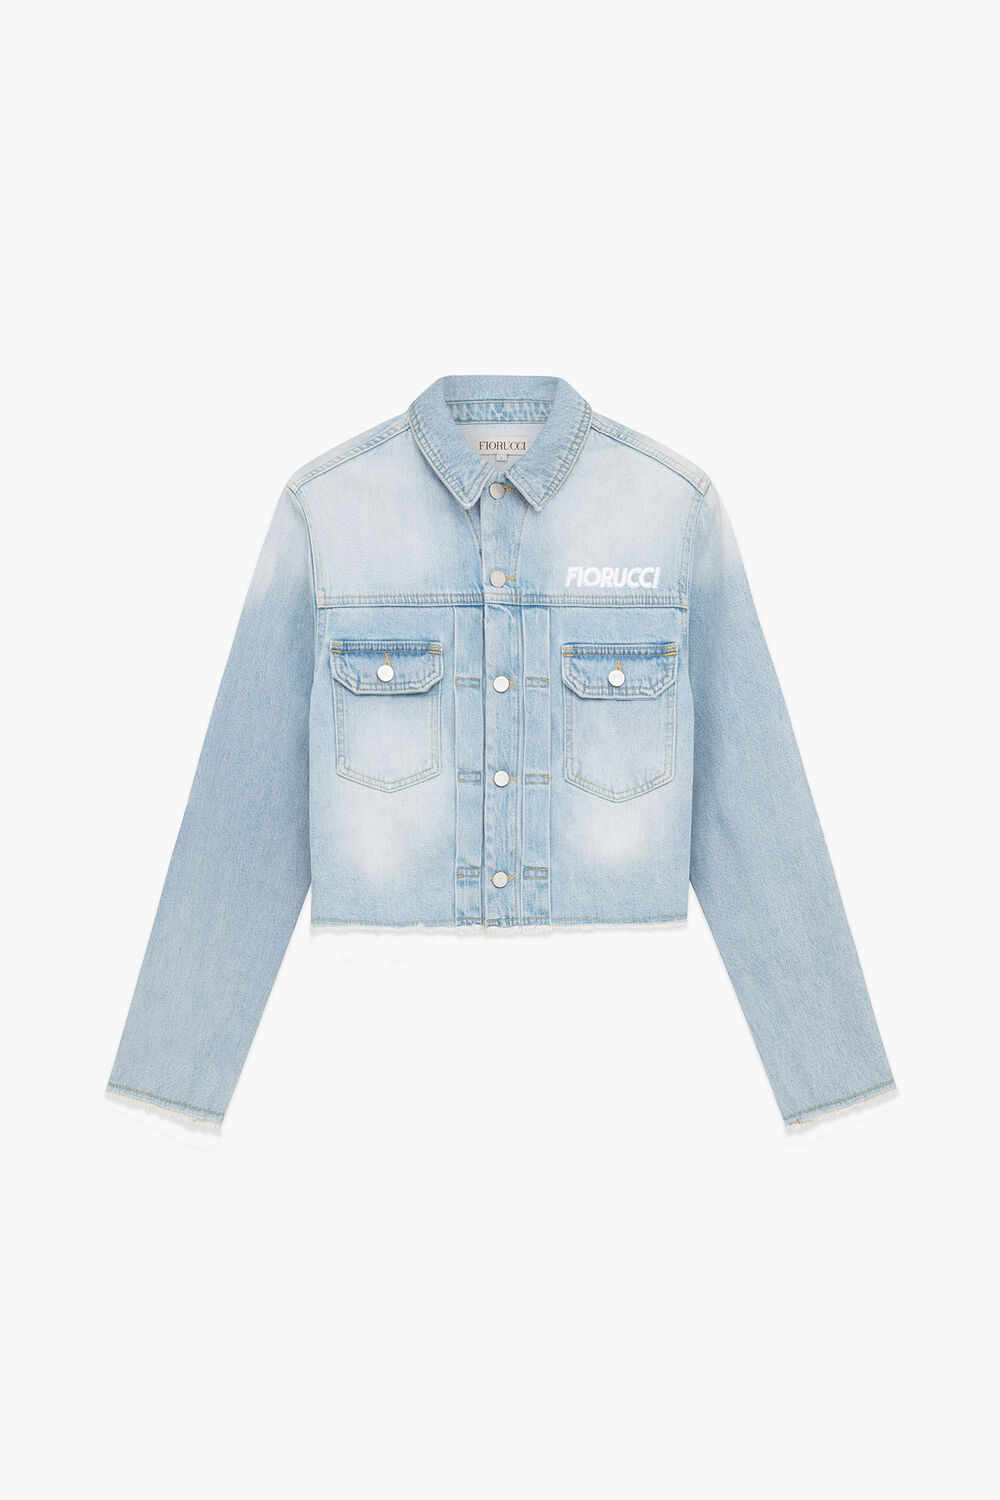 Berty Martini Crop Denim Jacket Light Vintage